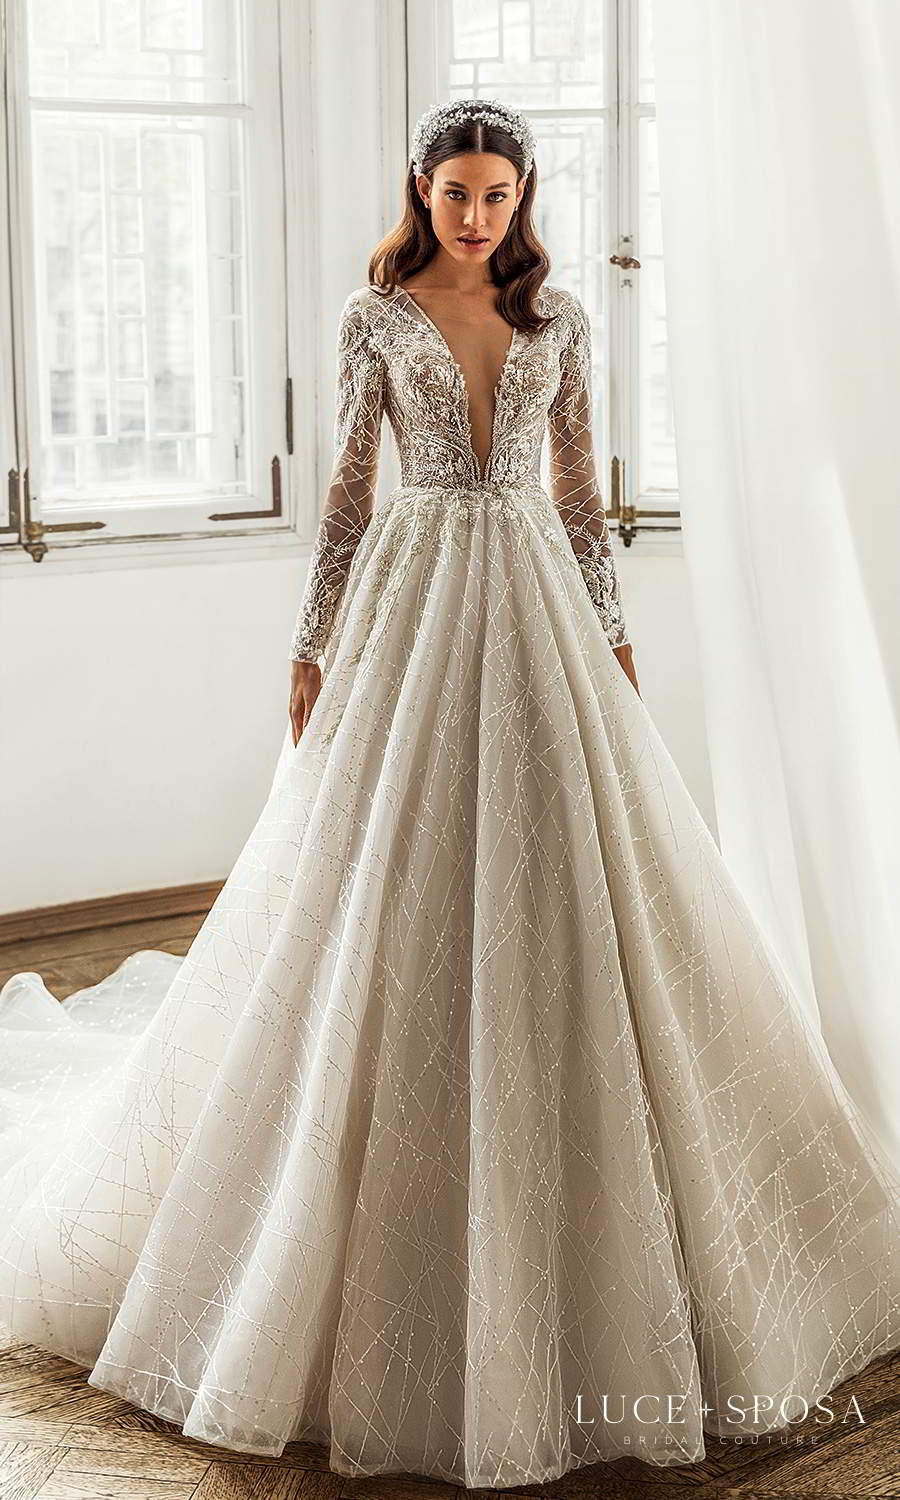 luce sposa 2021 shades of couture bridal long sleeve plunging v neckline fully embellished a line ball gown wedding dress cathedral train (kayley) mv